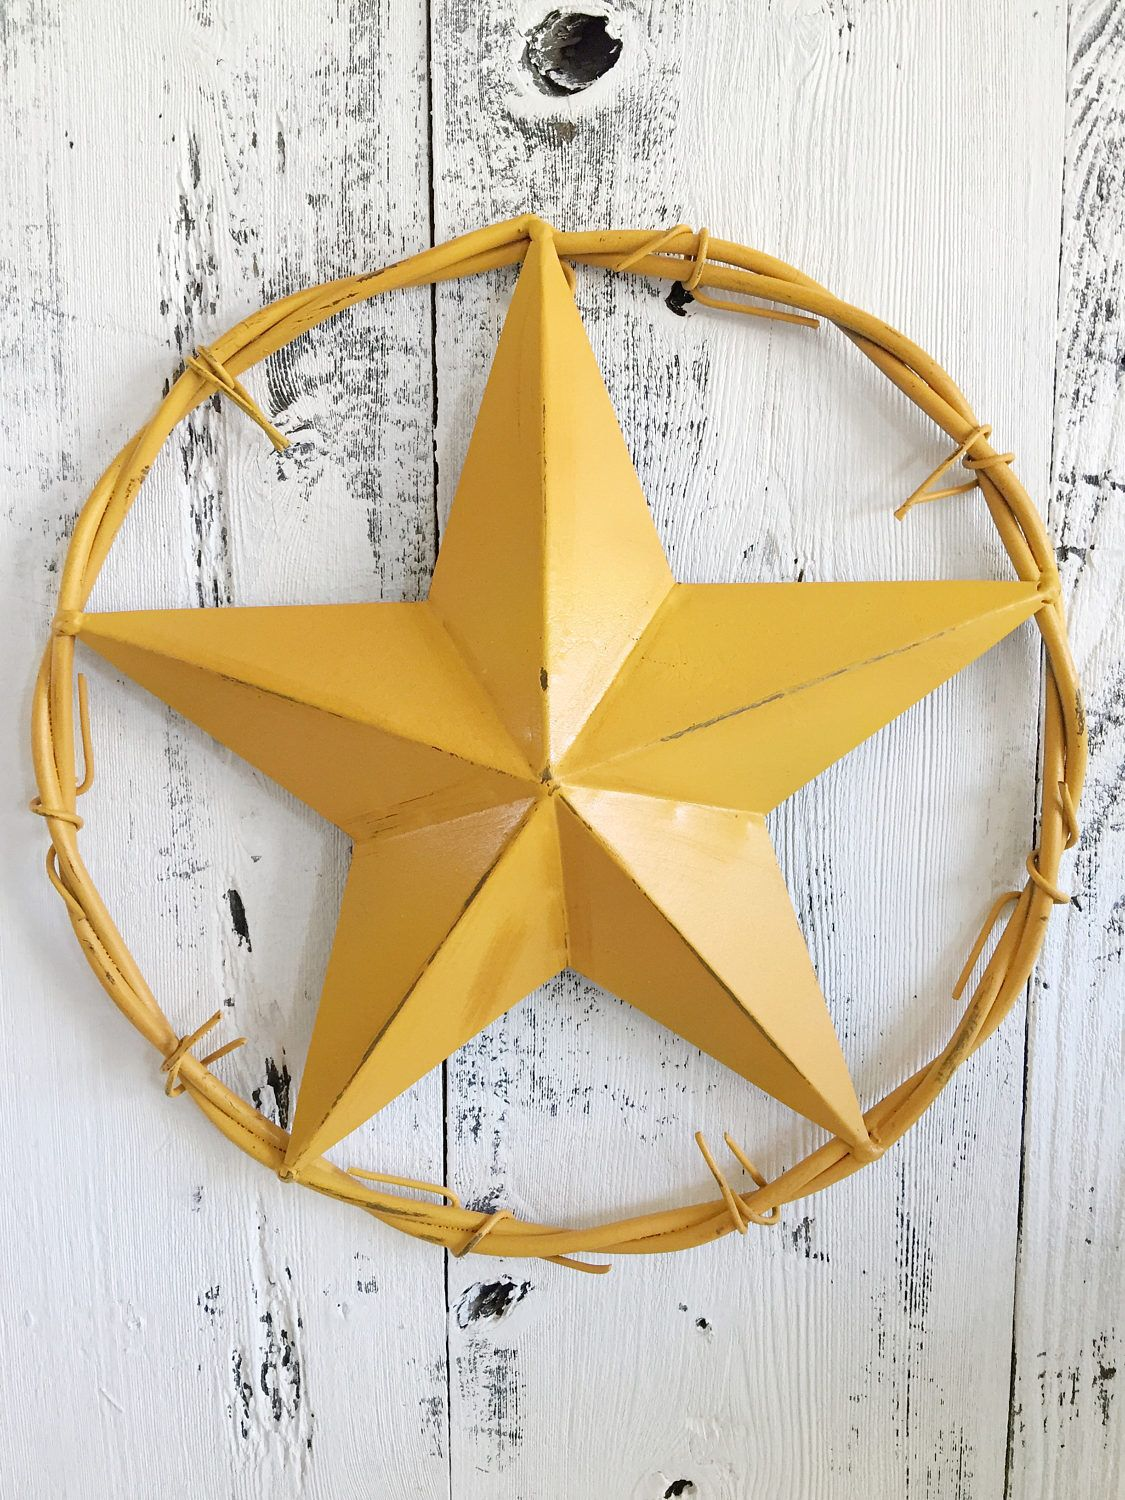 Luxury Texas Star Wall Decor Ornament - Art & Wall Decor - hecatalog ...